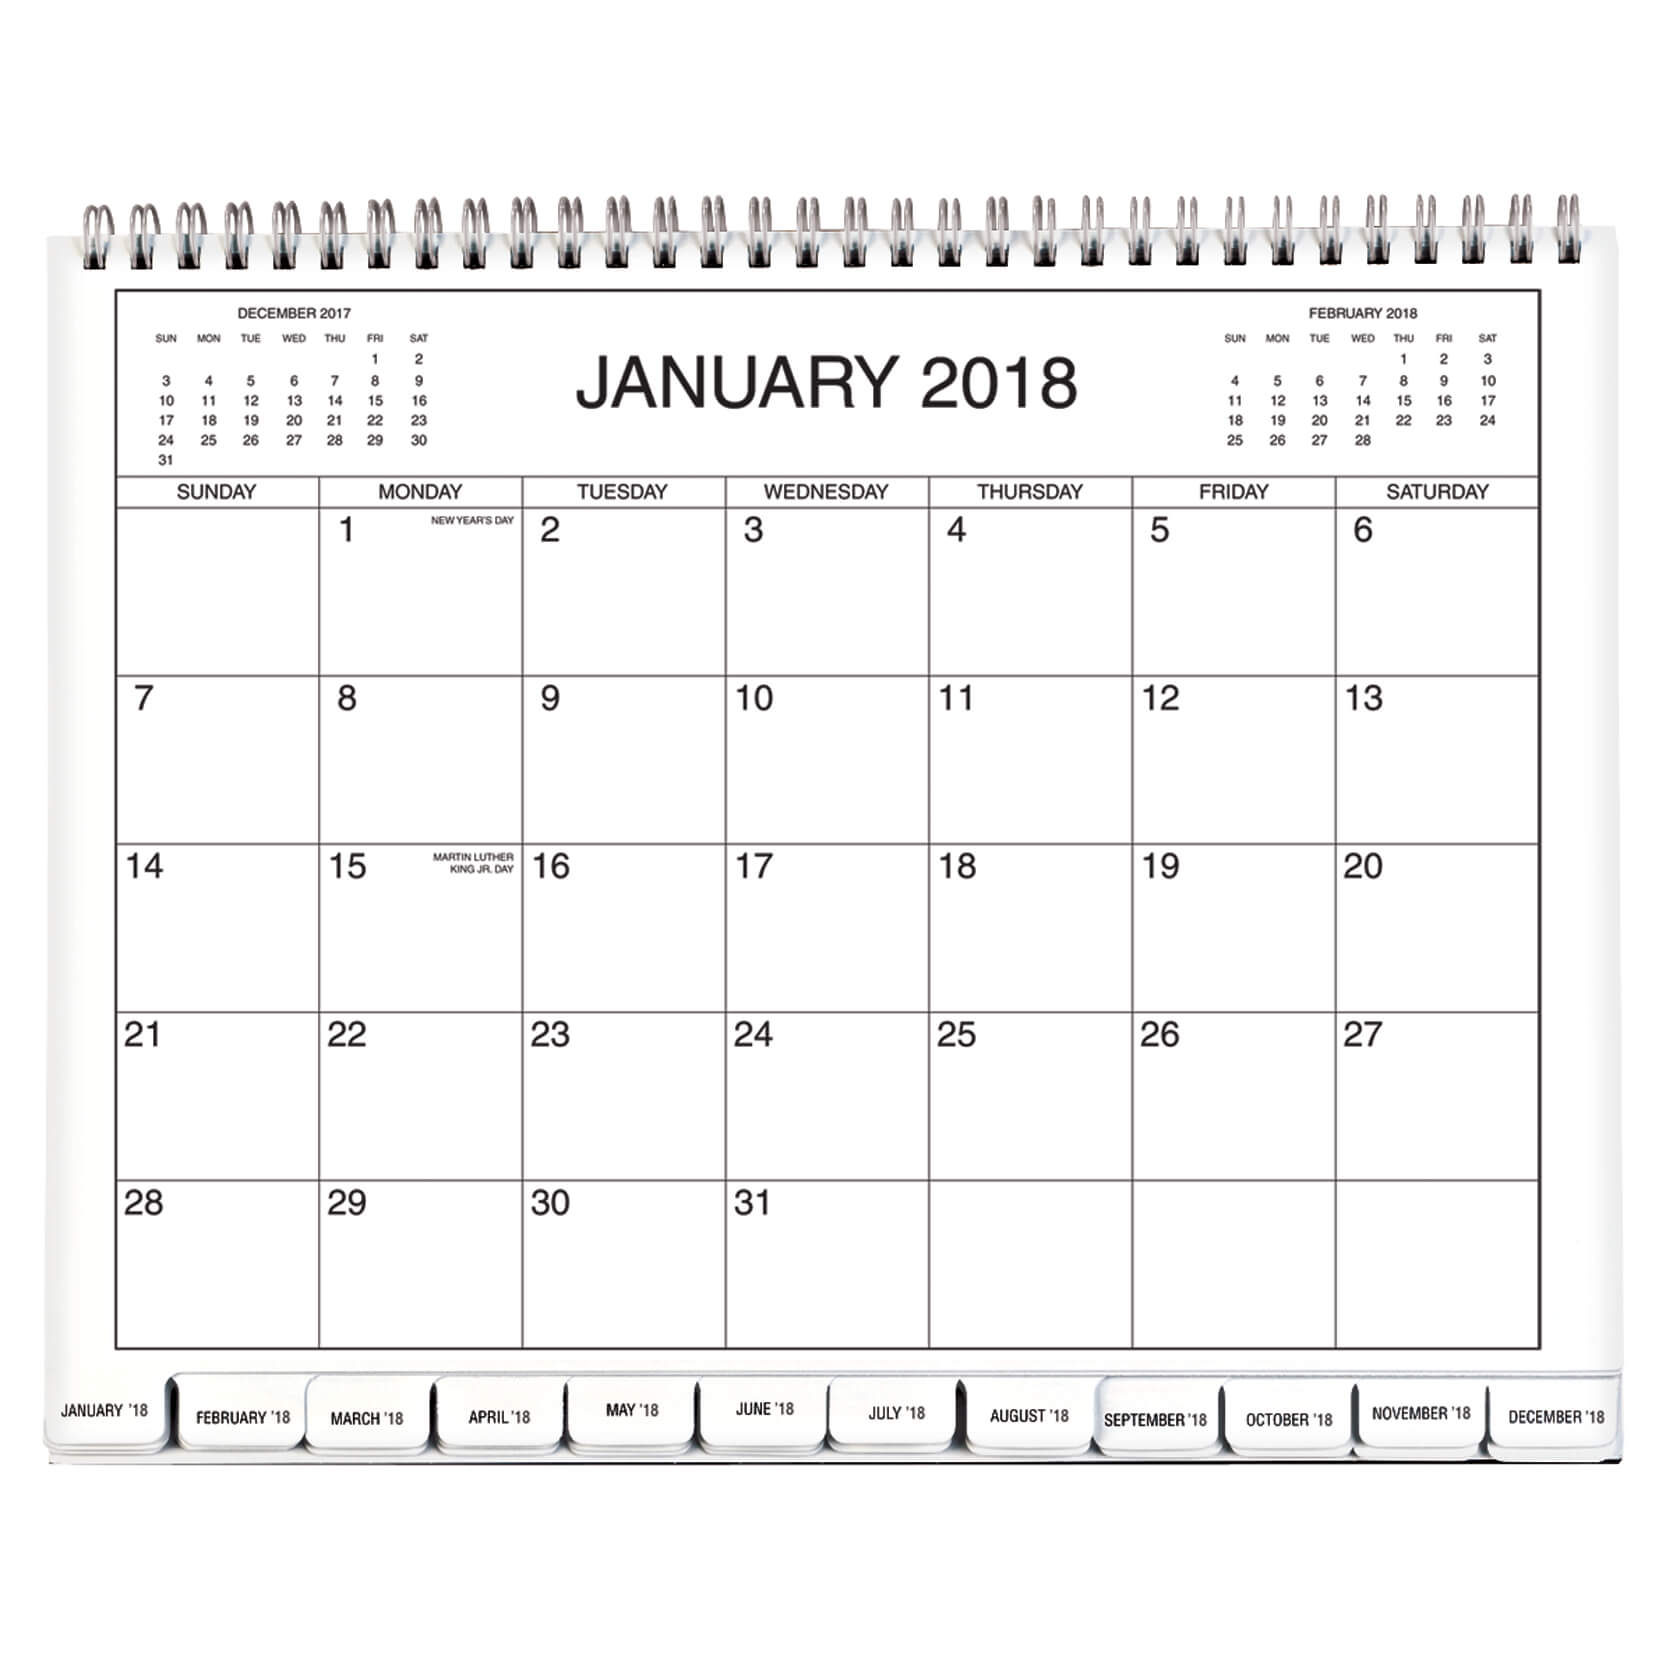 5 Year Calendar 2018-2019-2020-2021-2022 - Monthly Calendar - Walter in 2020 Calender With Space To Write